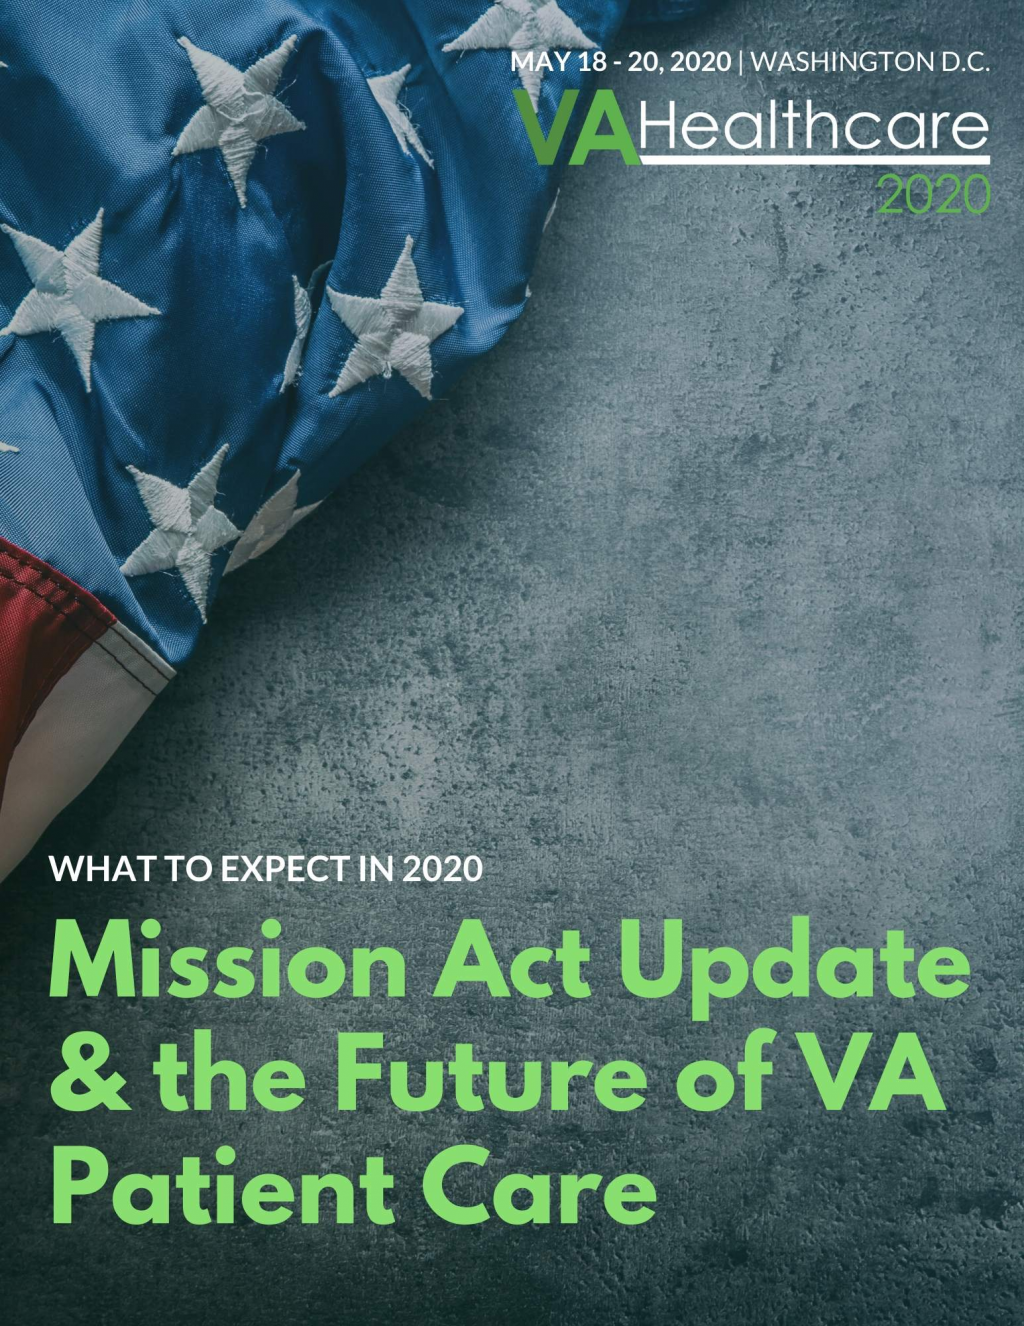 What to Expect in 2020: Mission Act Update & the Future of VA Patient Care